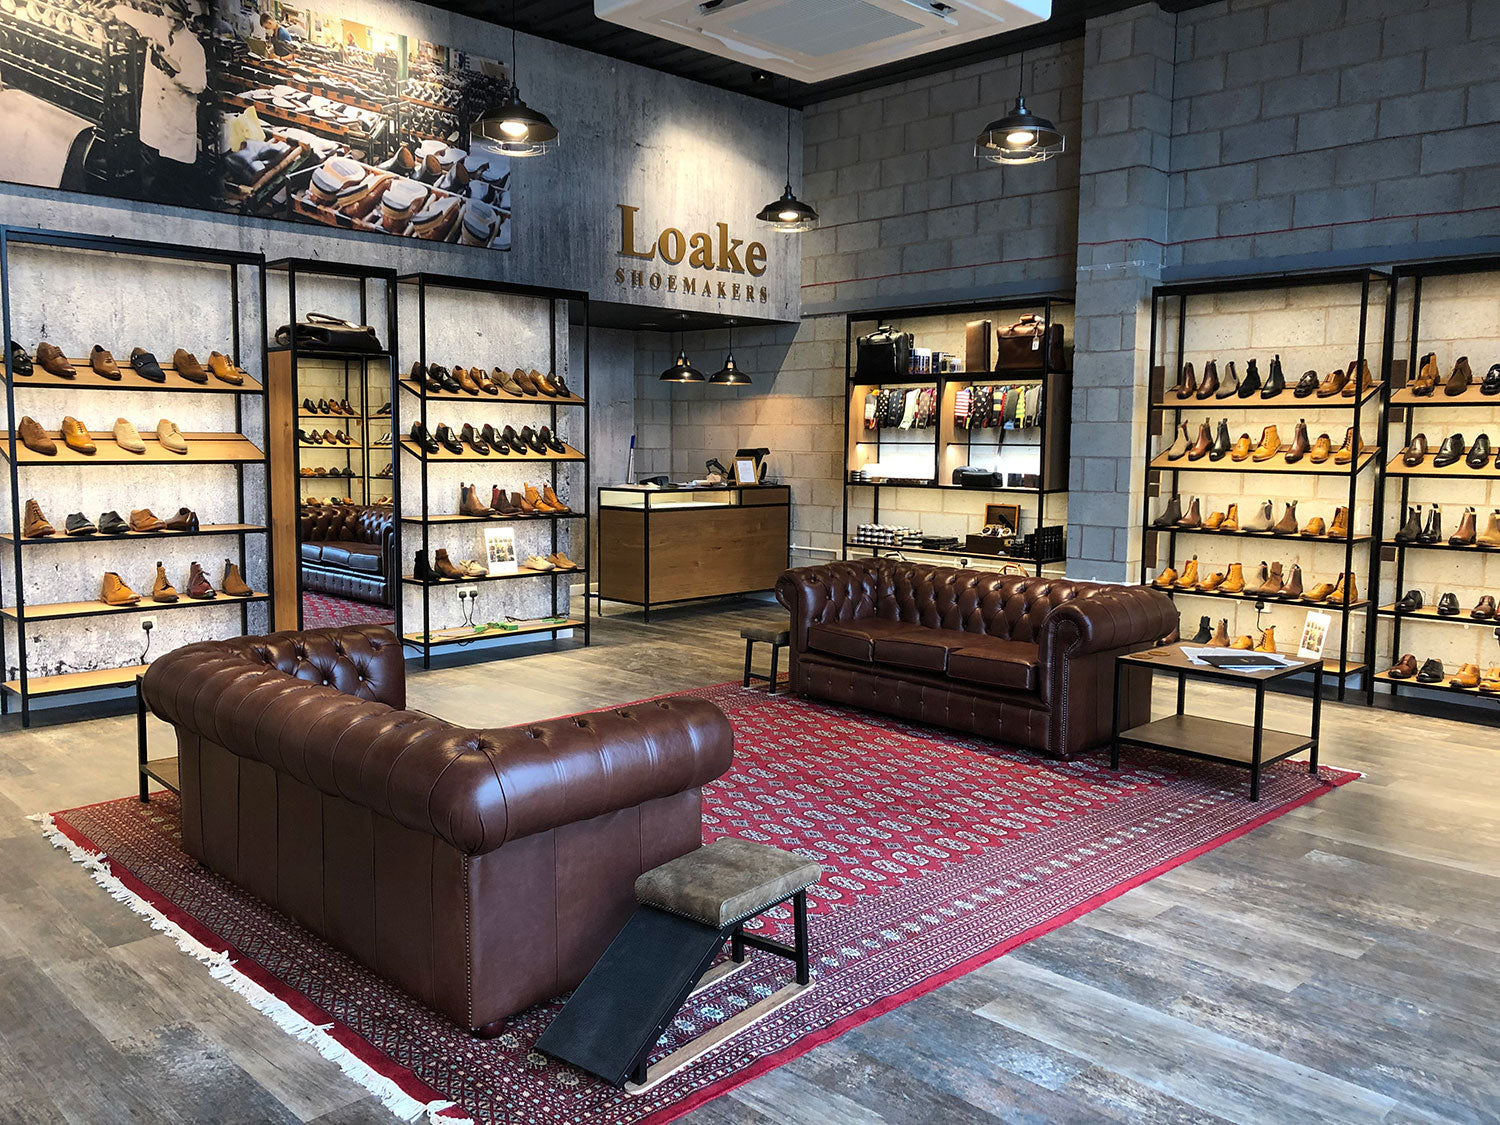 Loake factory shop